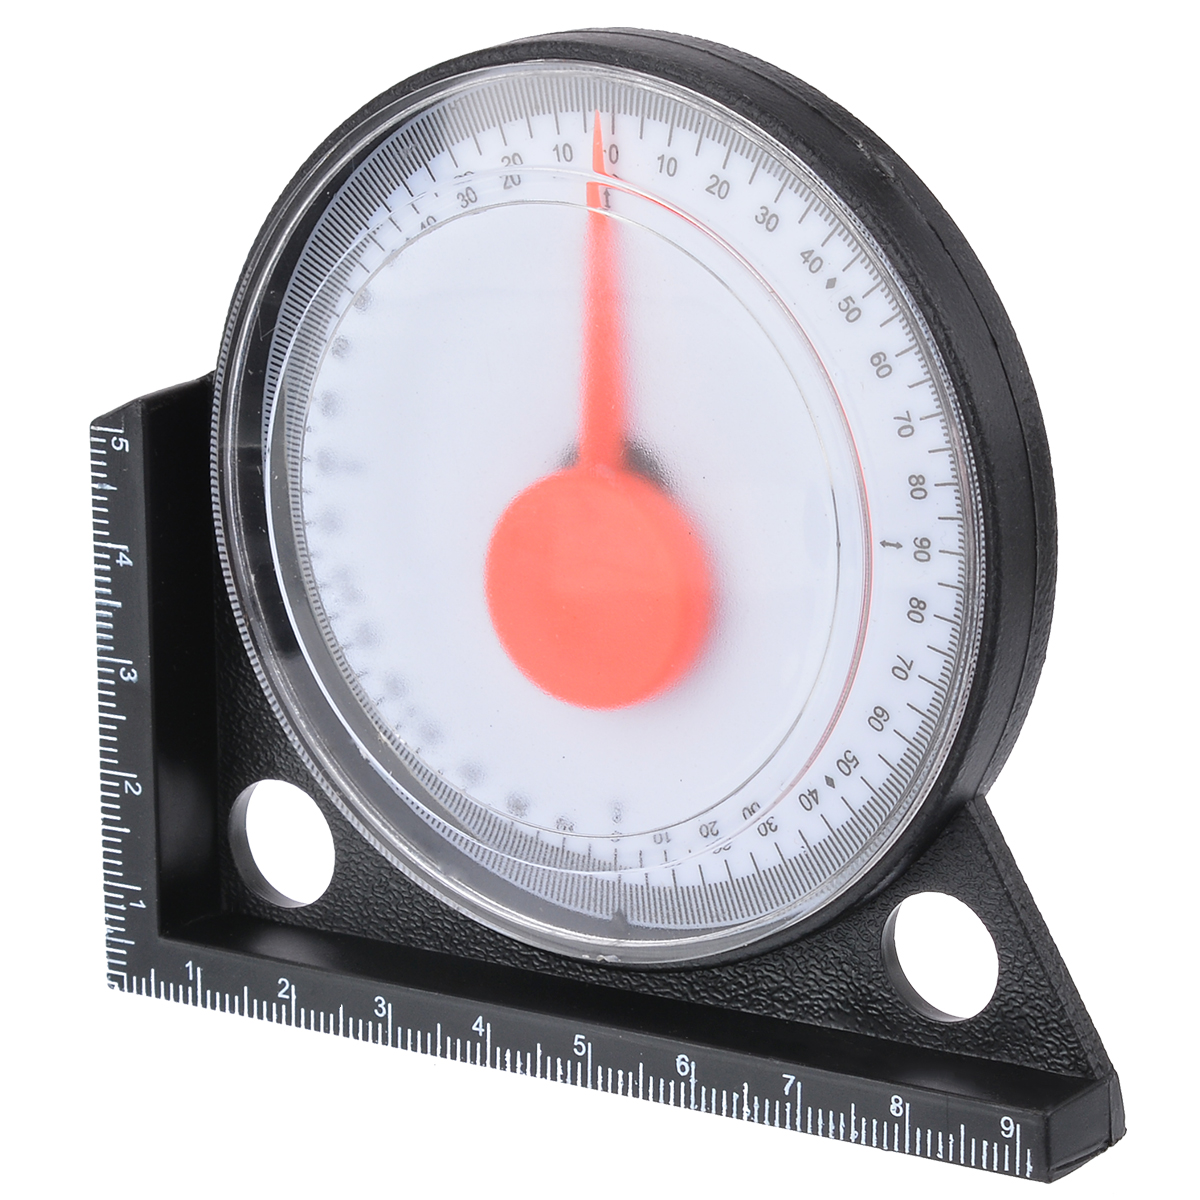 Multifunction Compass Inclinometer Angle Slope Level Meter Measure Incline Tool